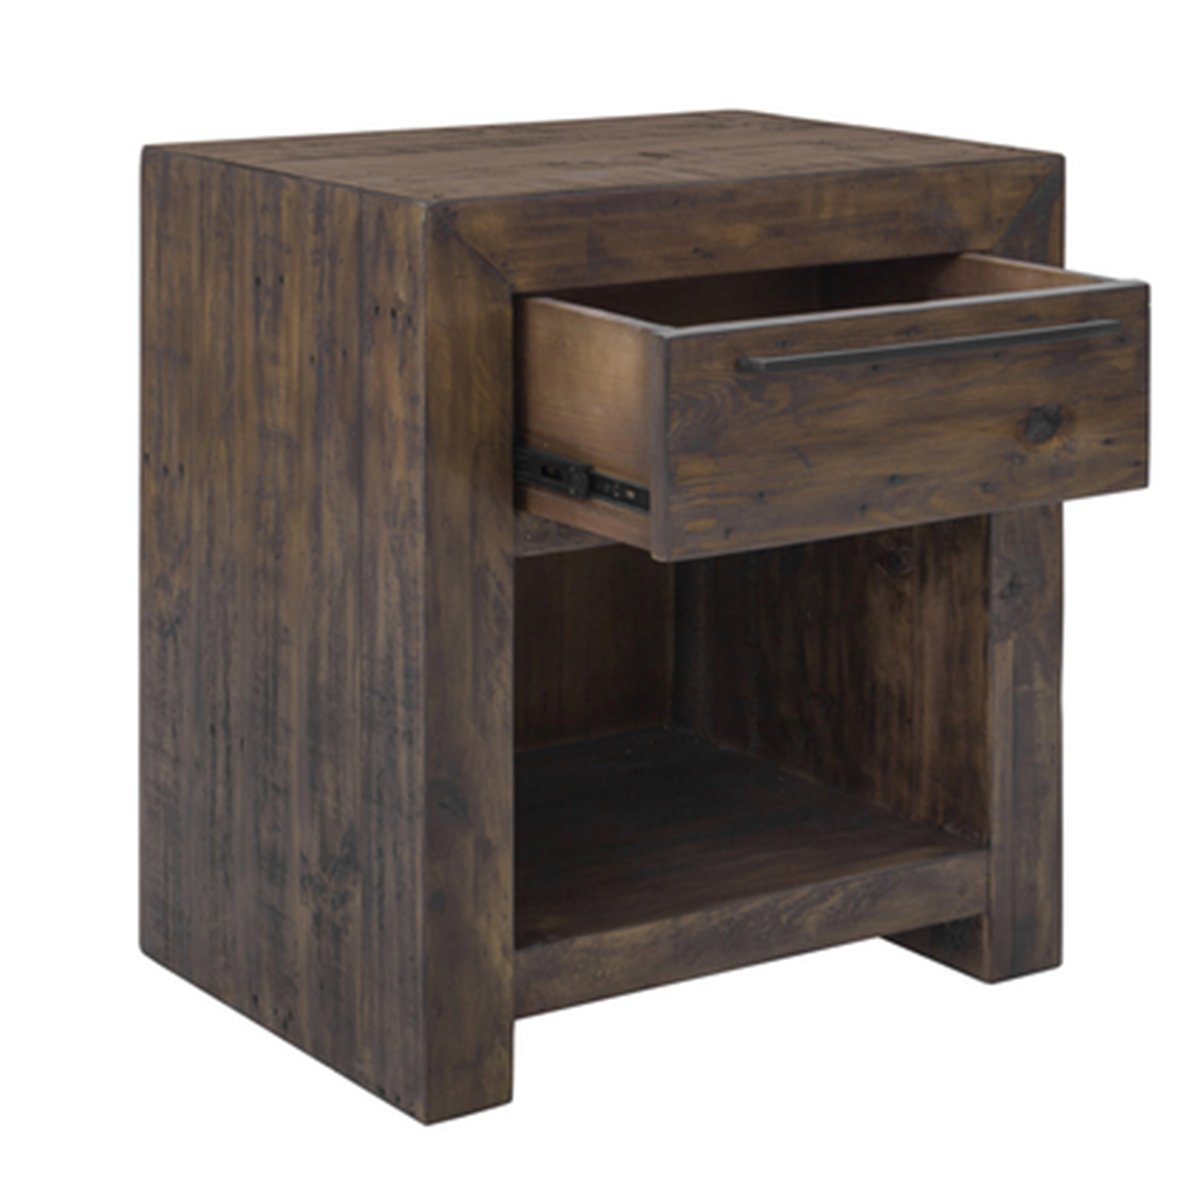 Solid Wood MODERN NIGHTSTAND - COFFEE BEAN - Showhome Furniture